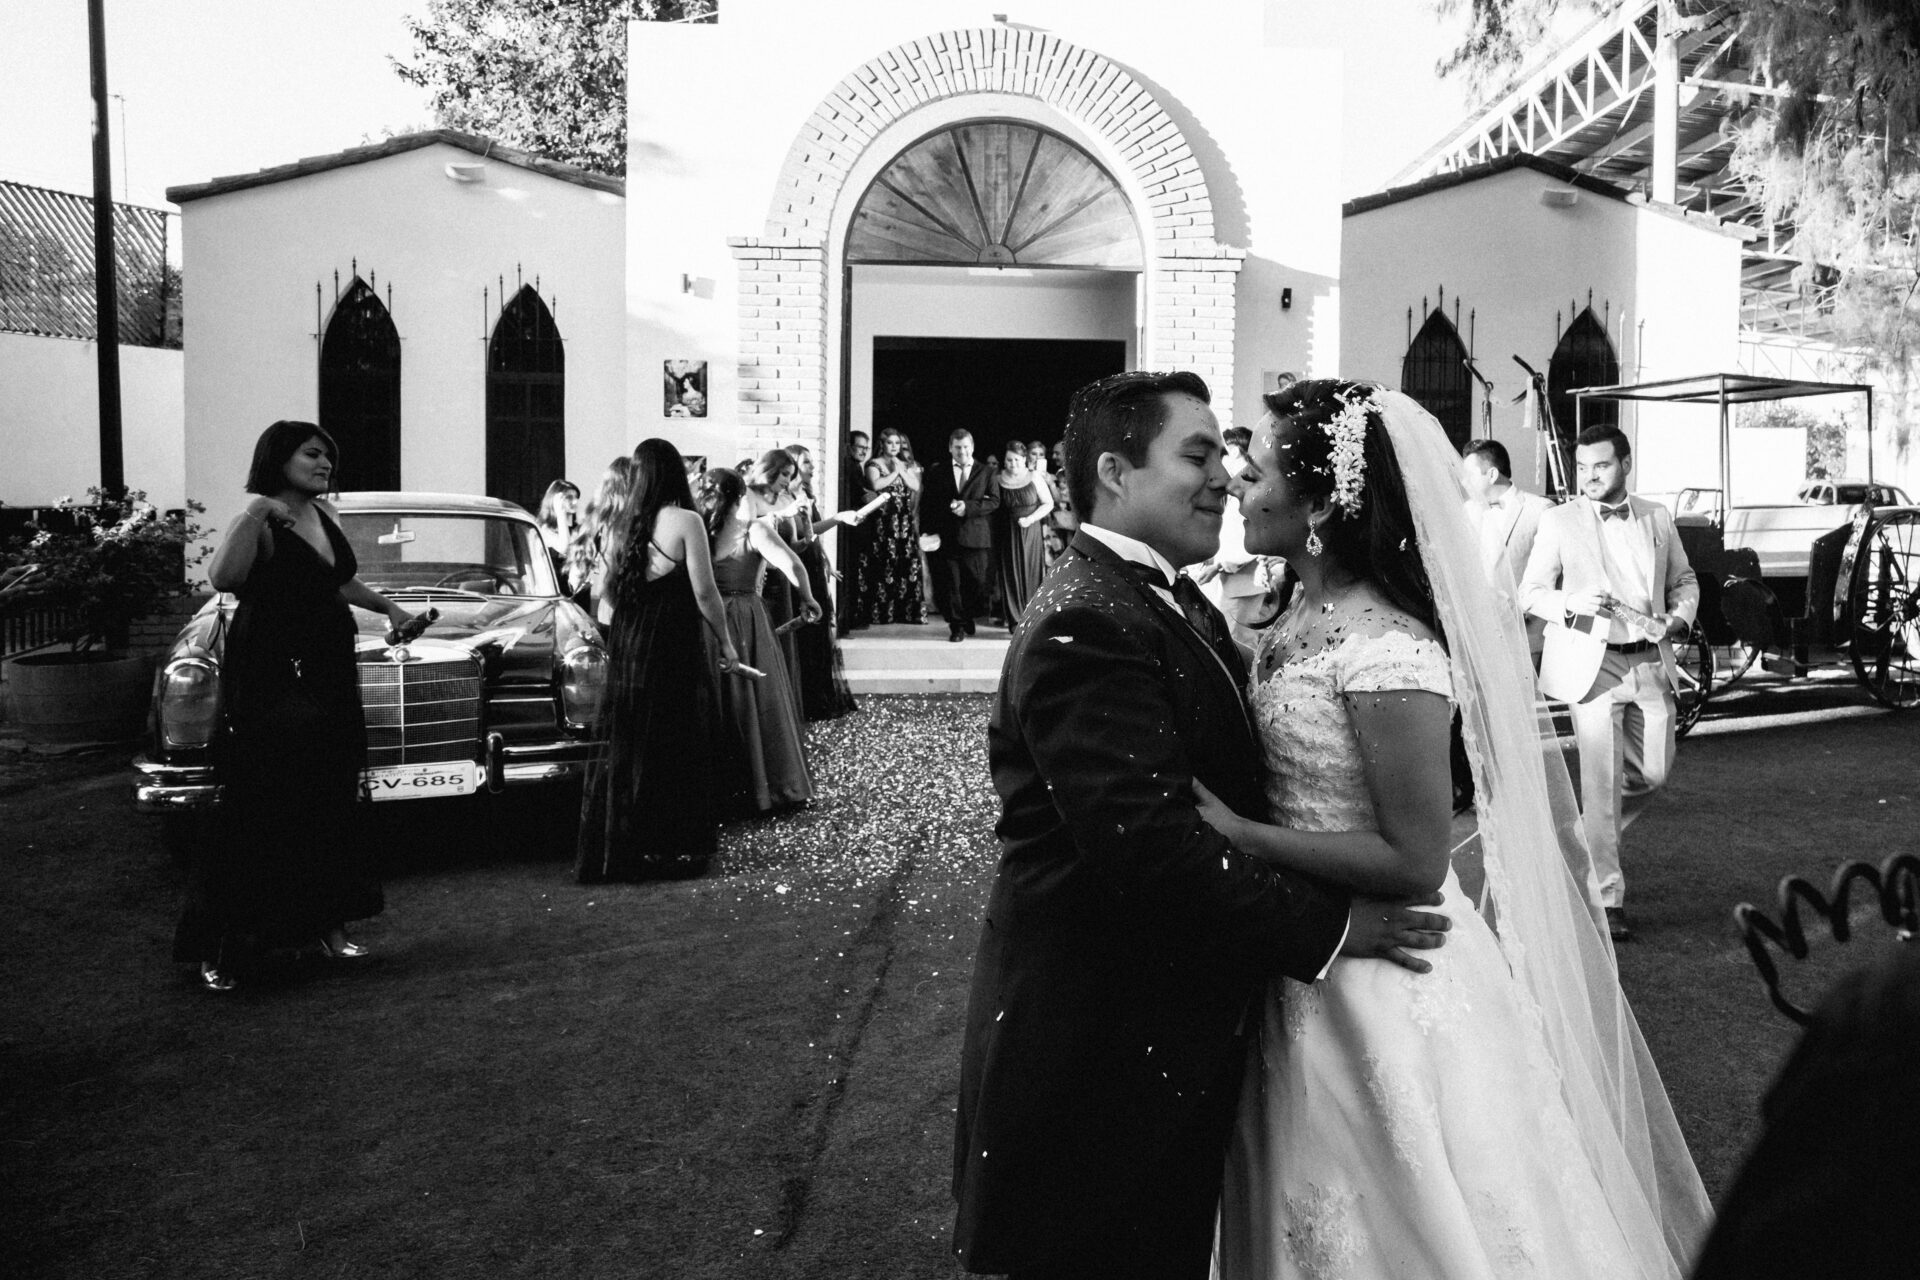 javier_noriega_fotografo_bodas_torreon_coahuila_zacatecas_wedding_photographer35a